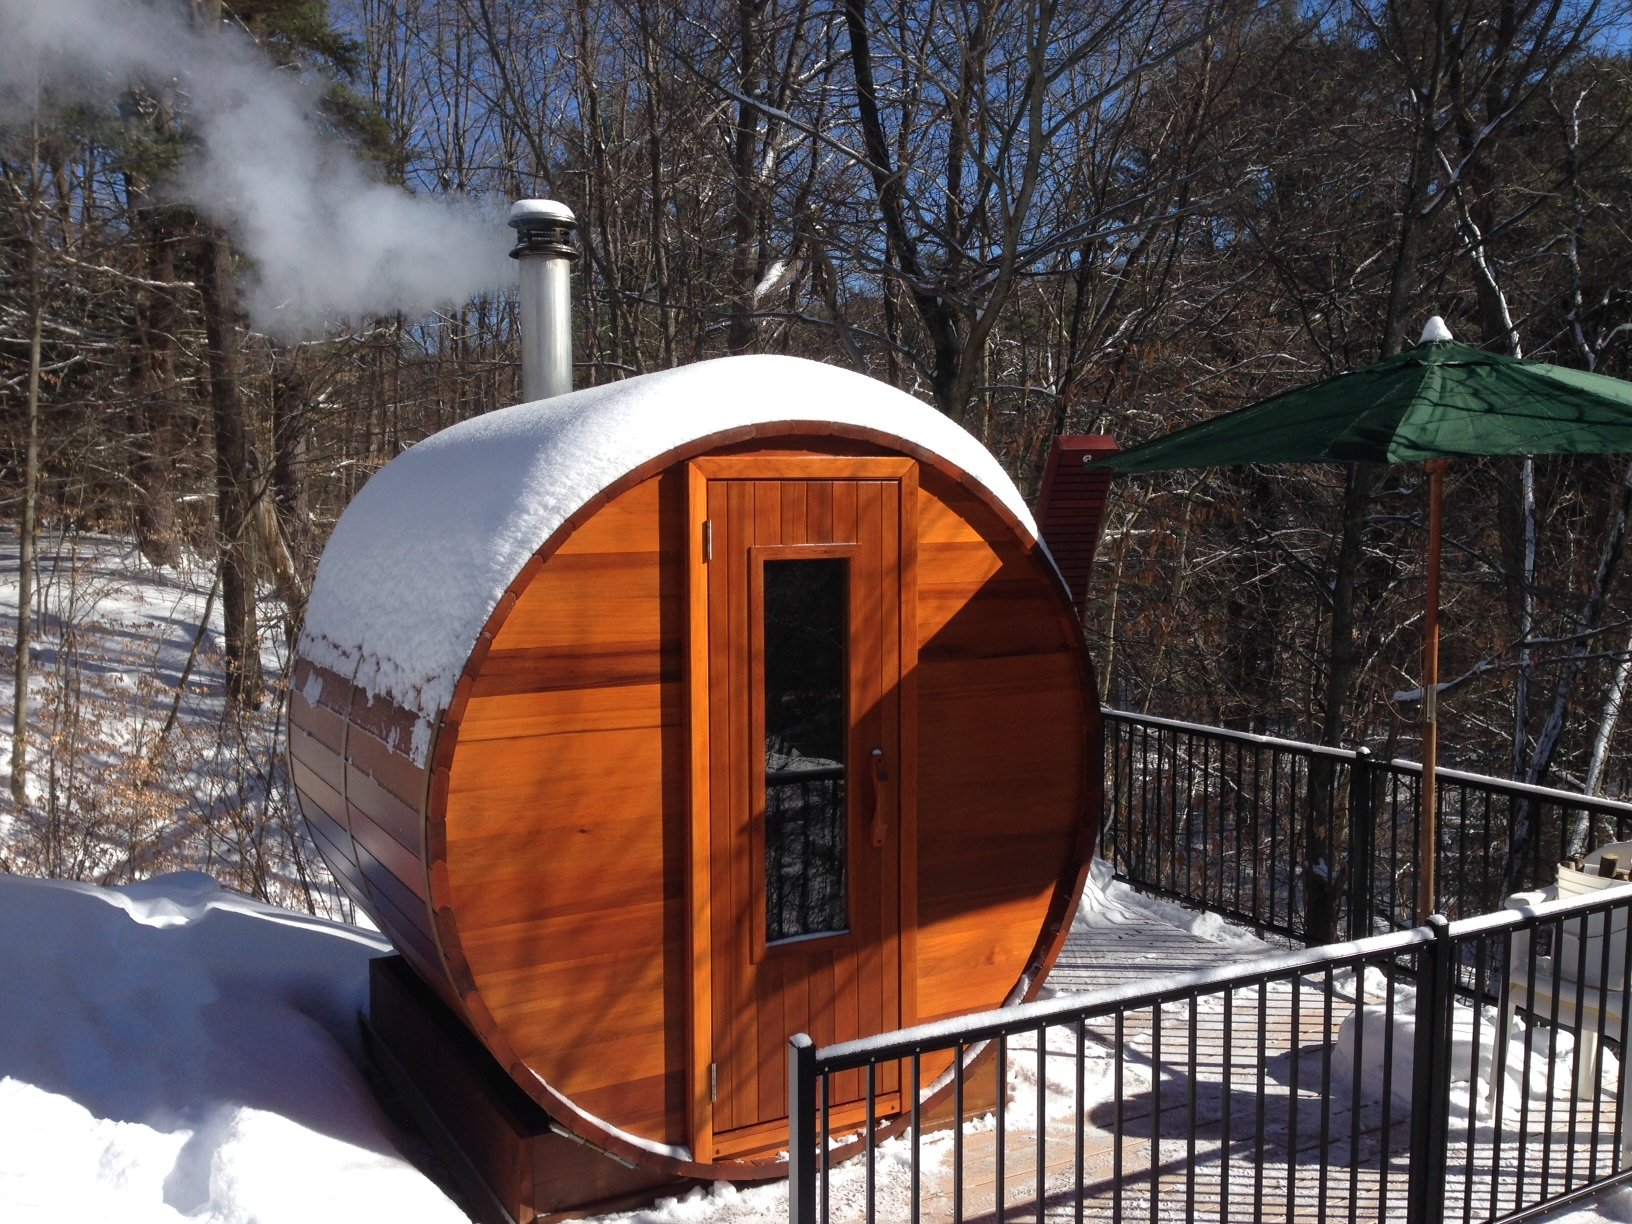 Barrel Sauna Kit - Outdoor Barrel Sauna Room 7' x 7' -Wood Fired ...